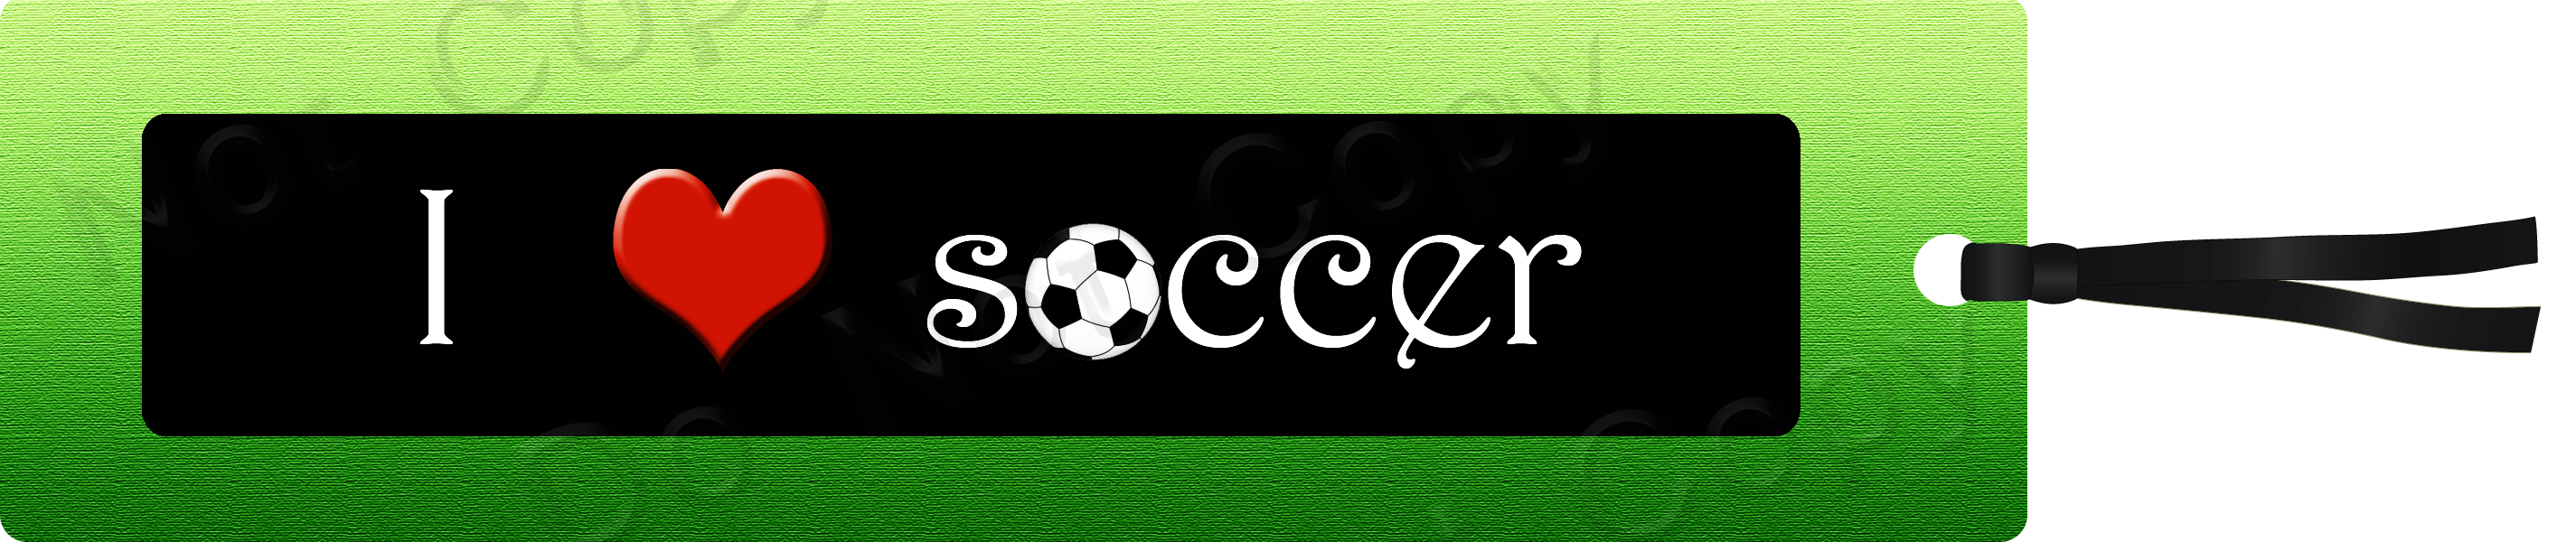 Sports_HeartSoccer_Black